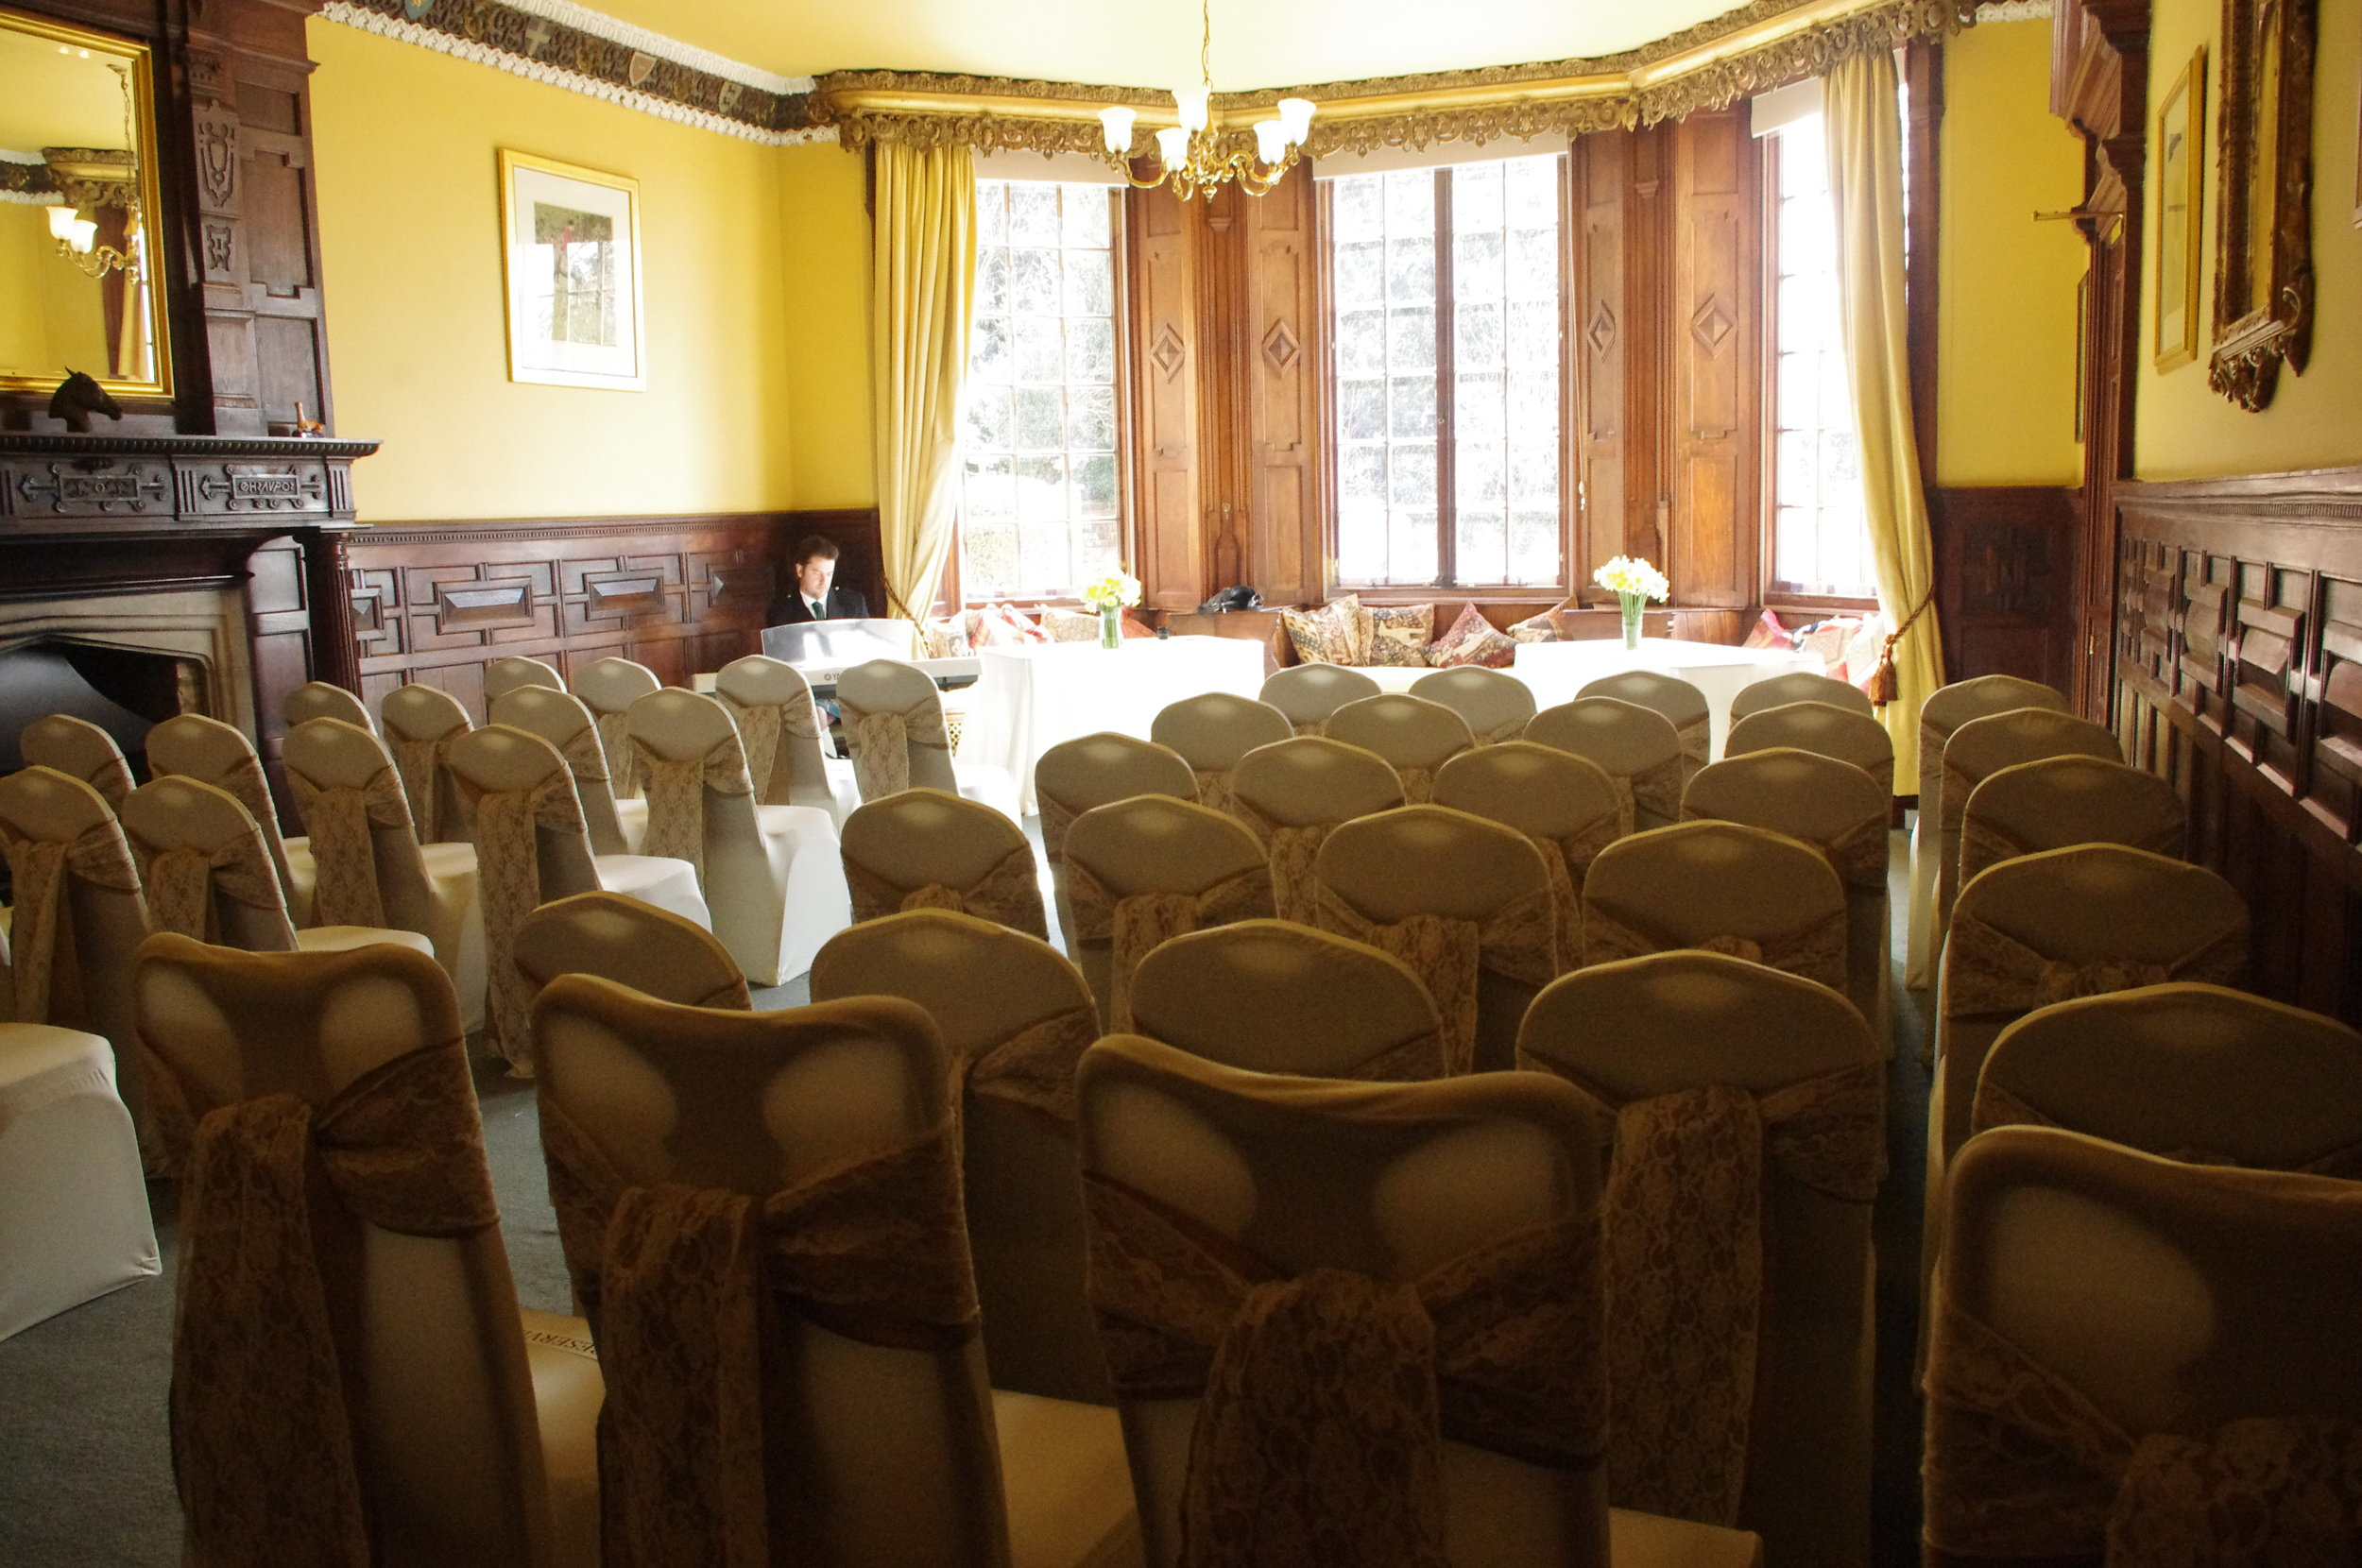 Wedding ceremony room at Skendleby Hall set up for 50 guests